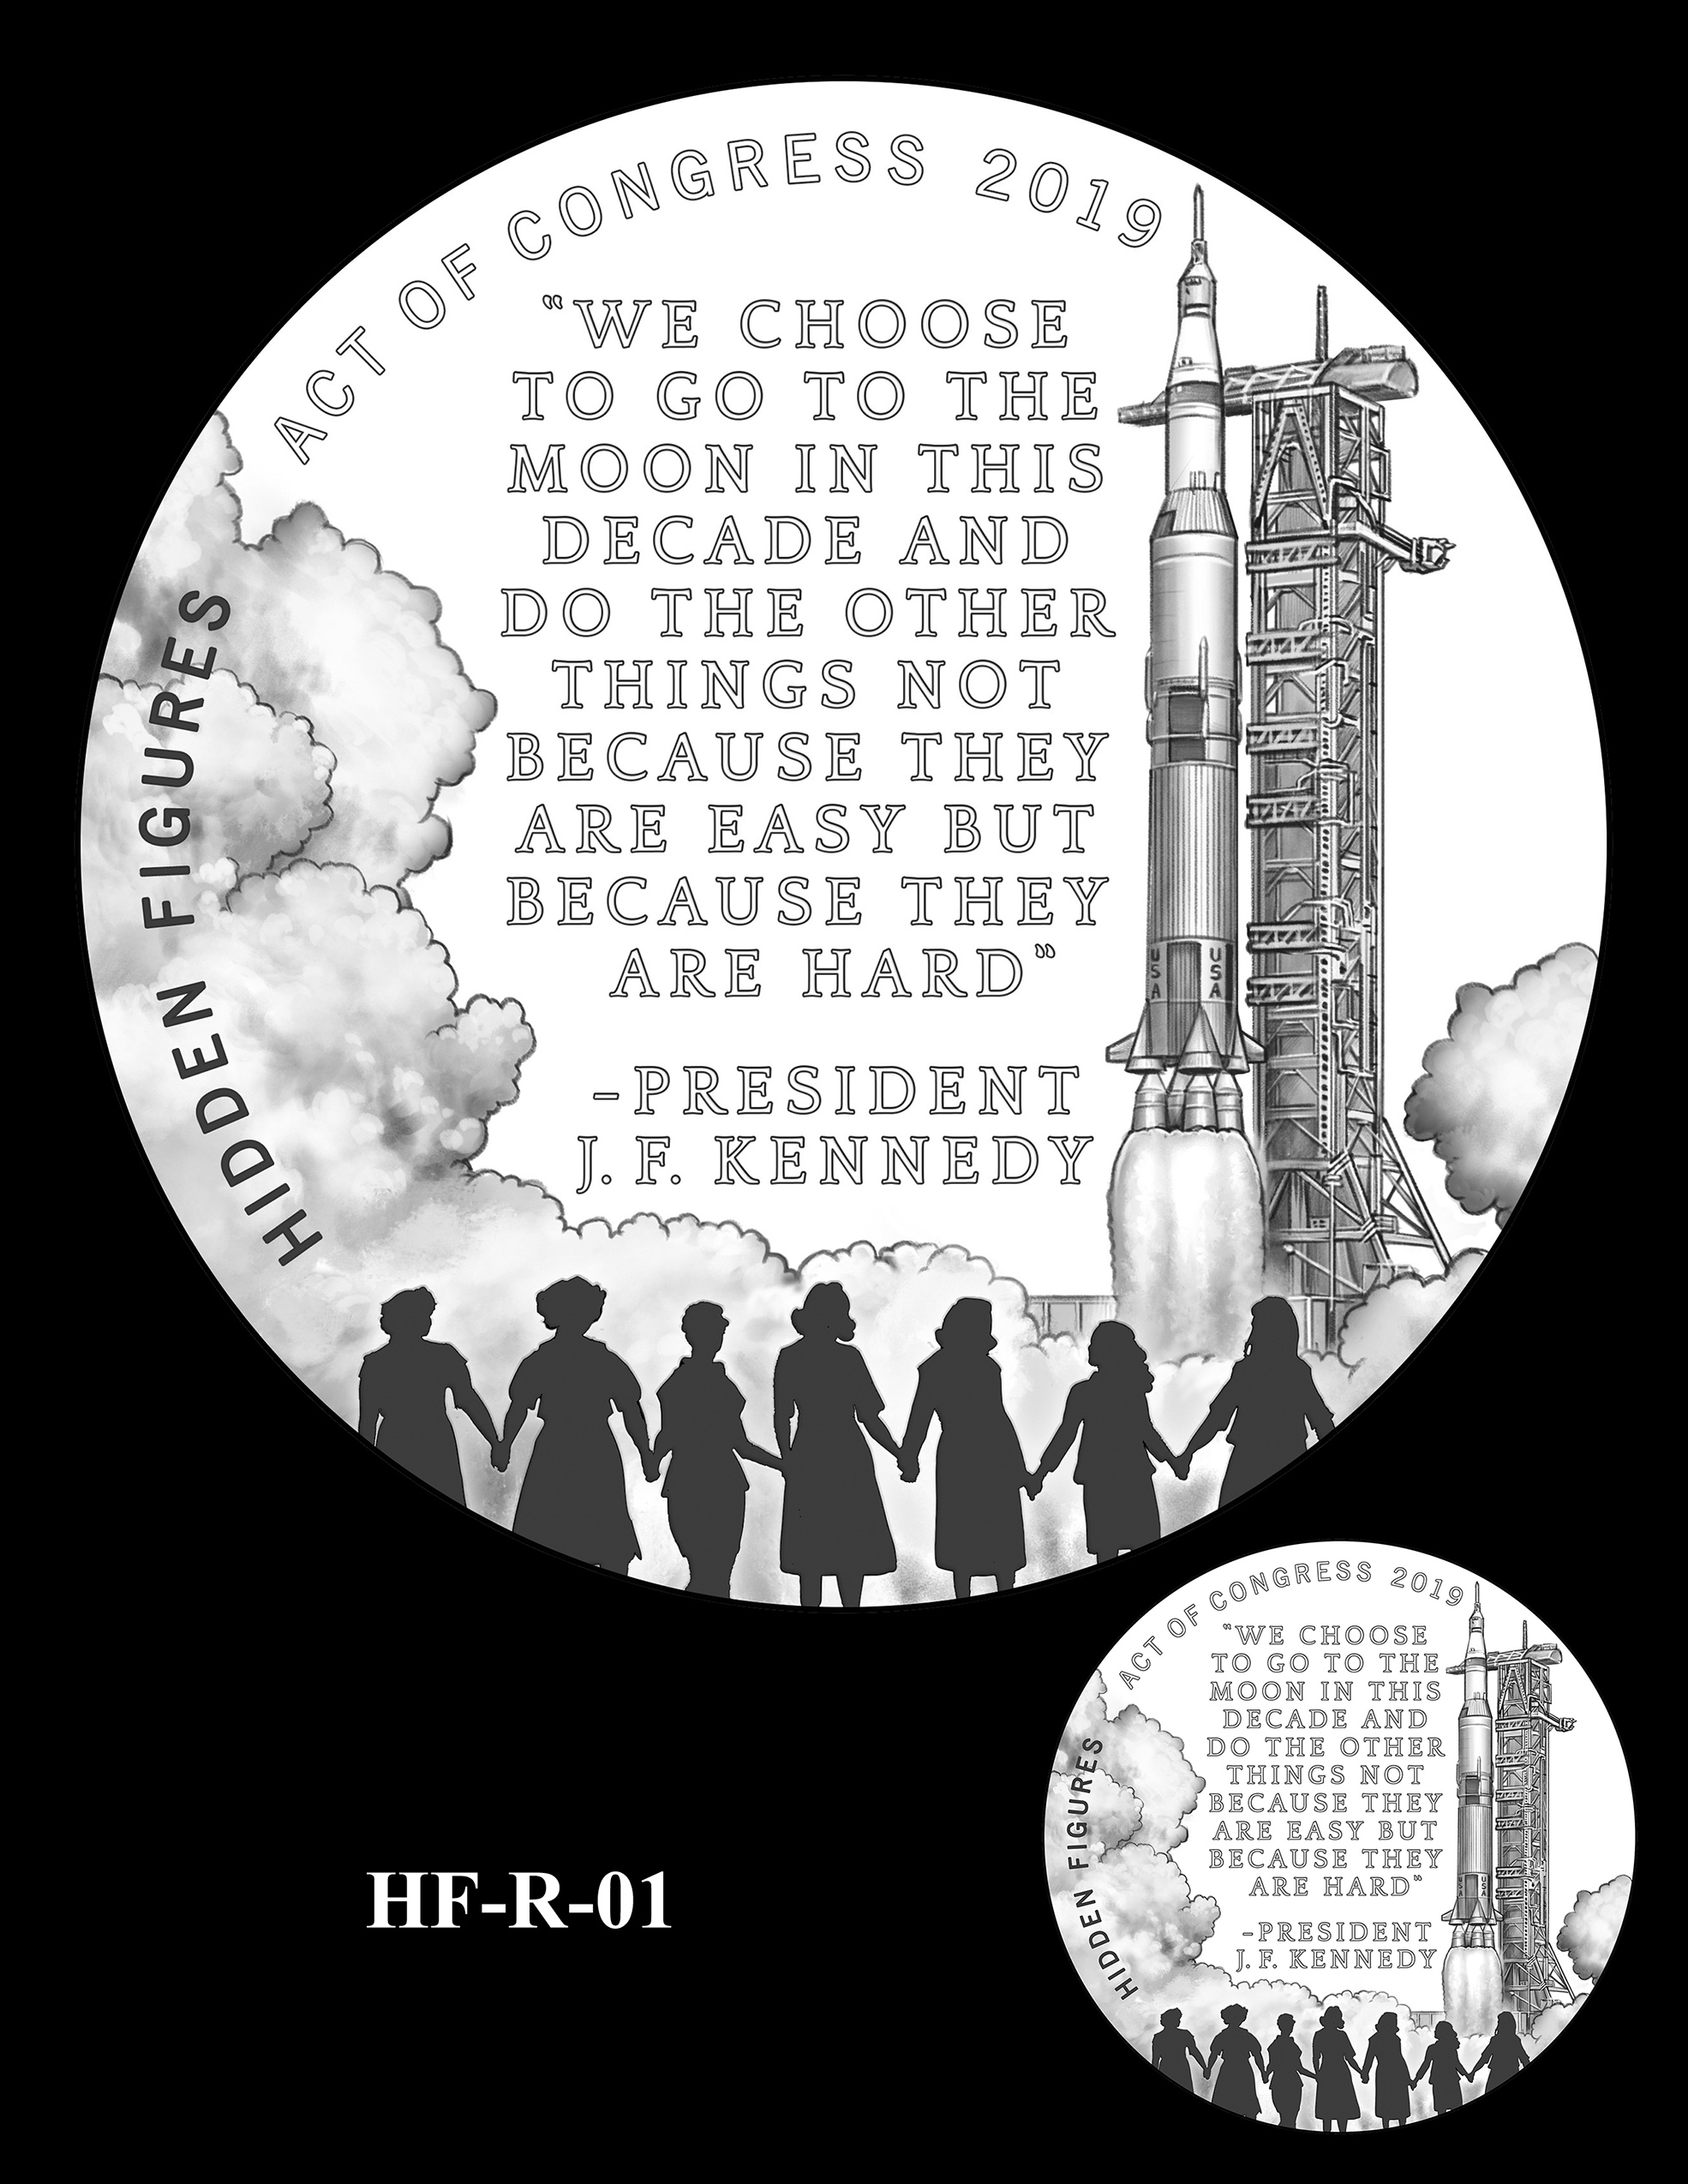 HF-R-01 -- Hidden Figures Group Congressional Gold Medal